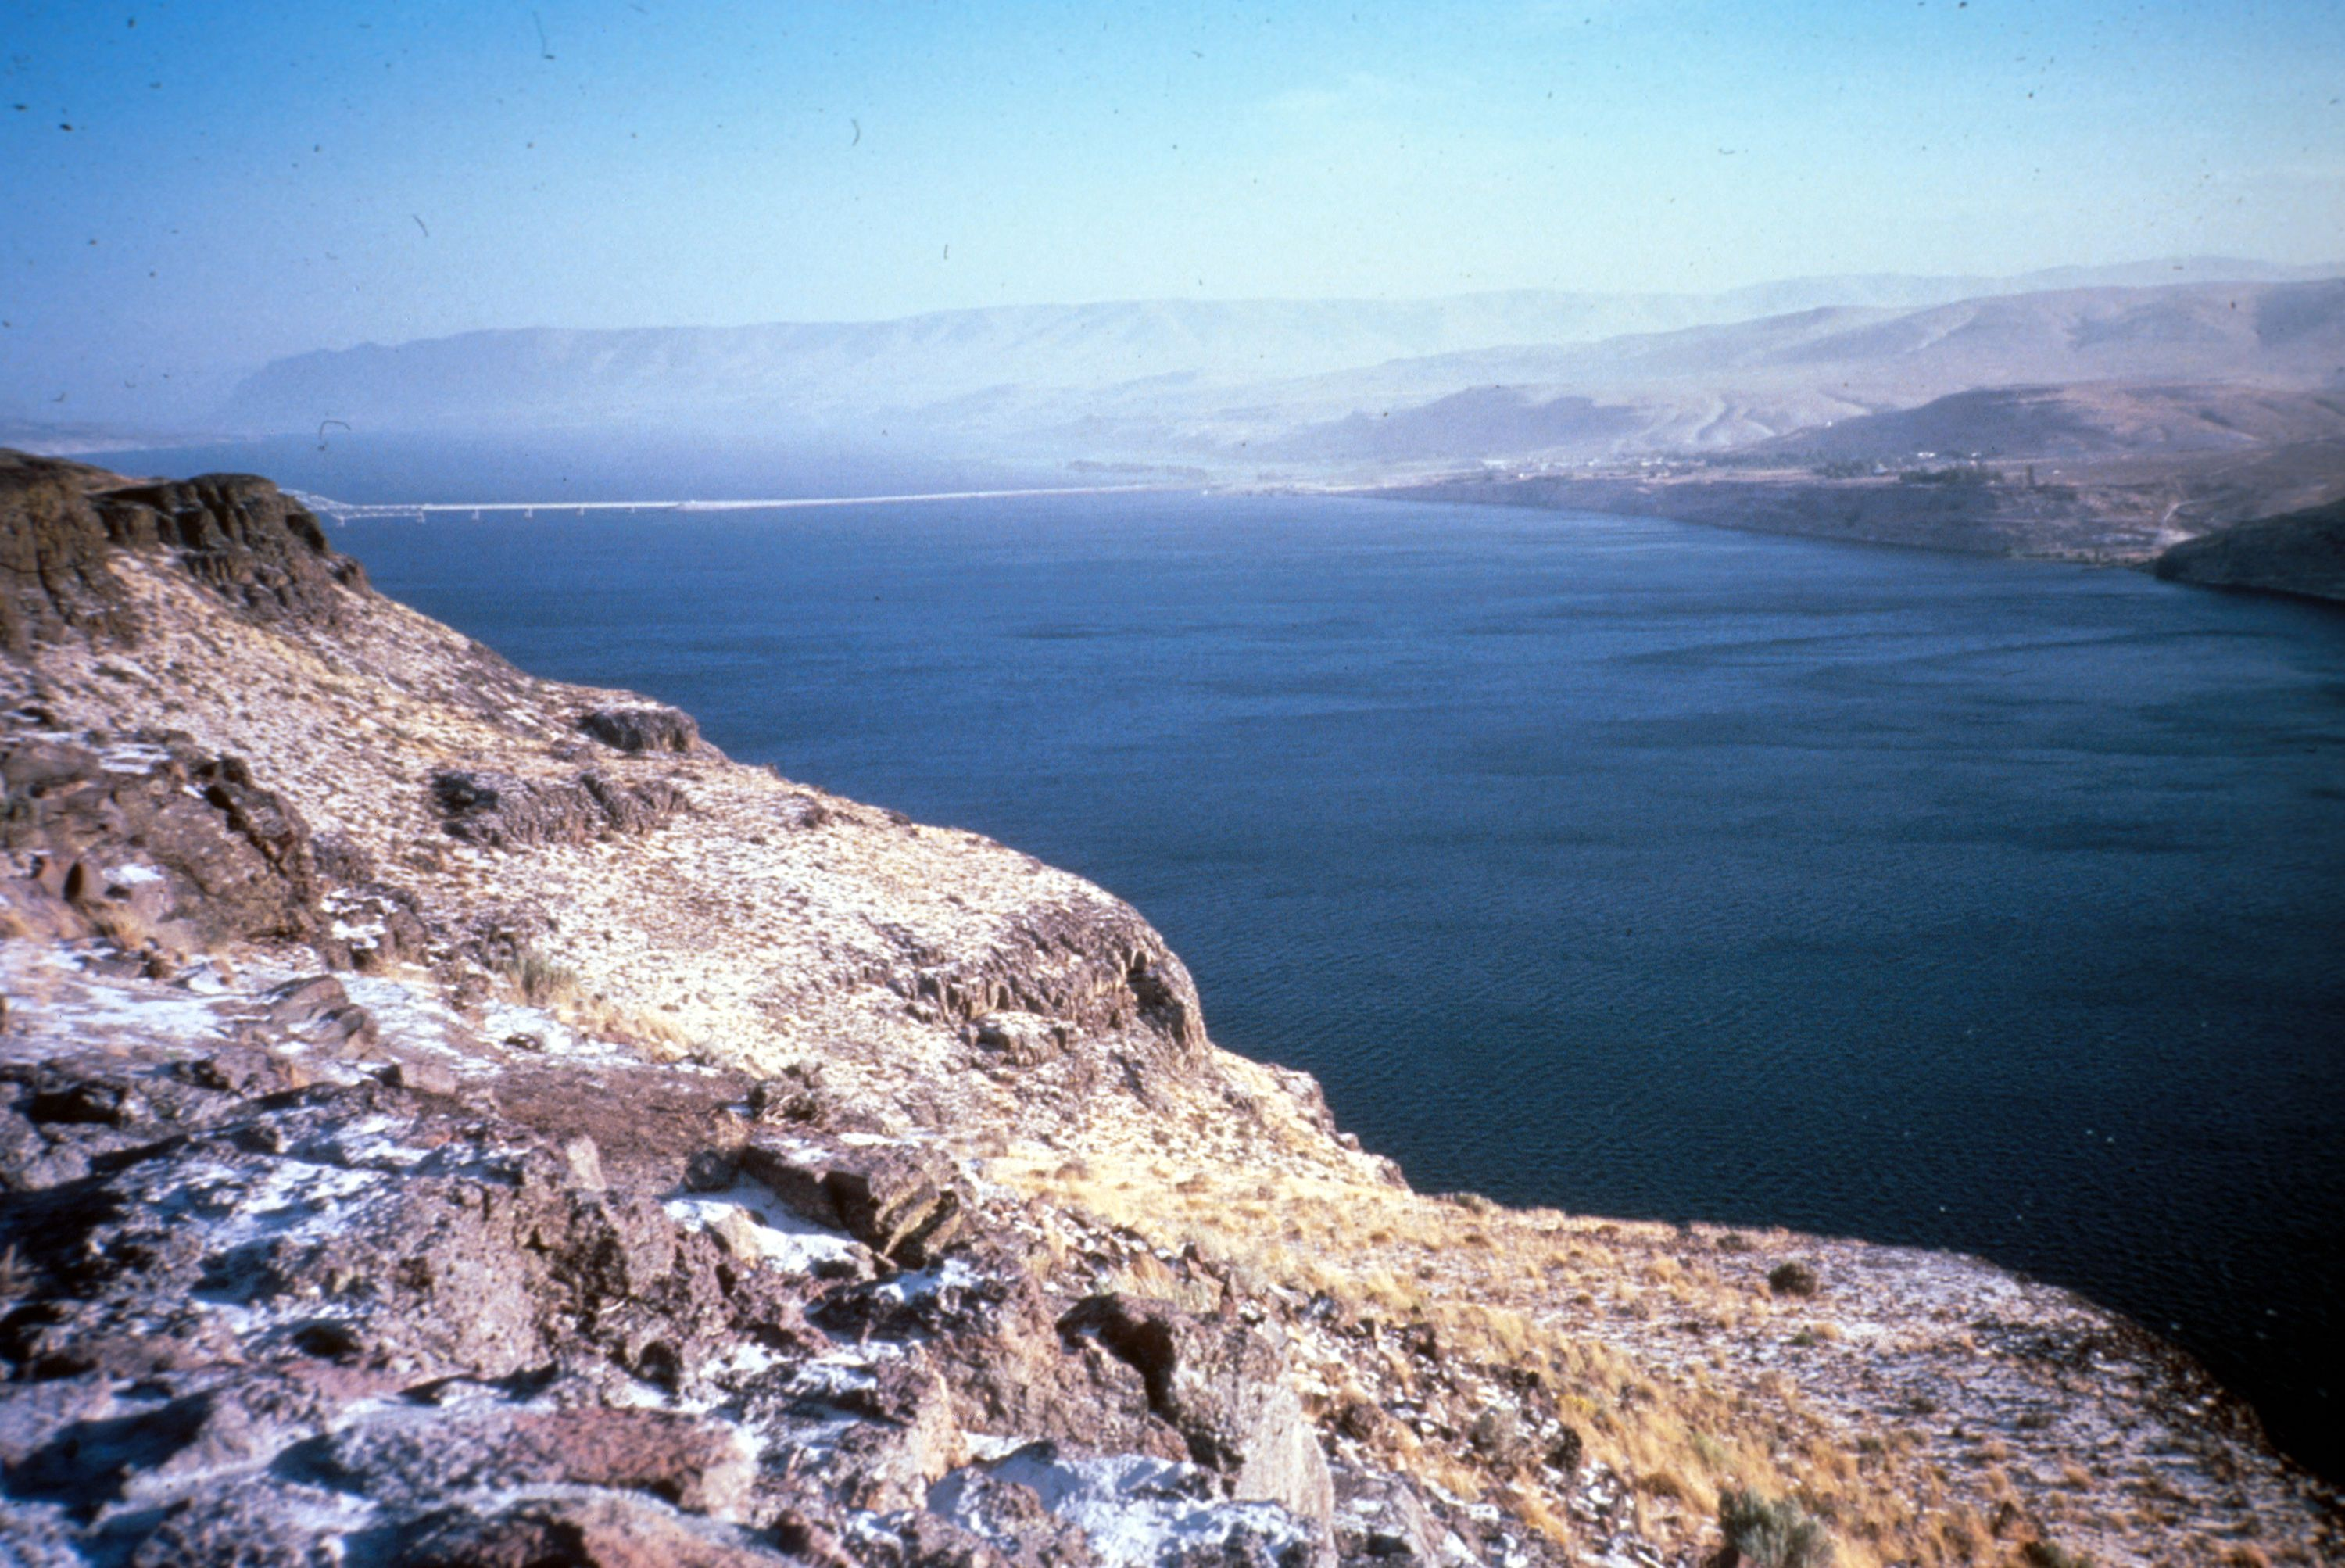 Image shows a portion of the Columbia River. The river is dark blue. There is a screen of ash drifting over it in the background of the photo, making the distance all hazy, almost like cirrus clouds close to the ground. The weathered brown basalt of its banks is dusted with whitish-gray ash, almost looking like a fine coating of snow.